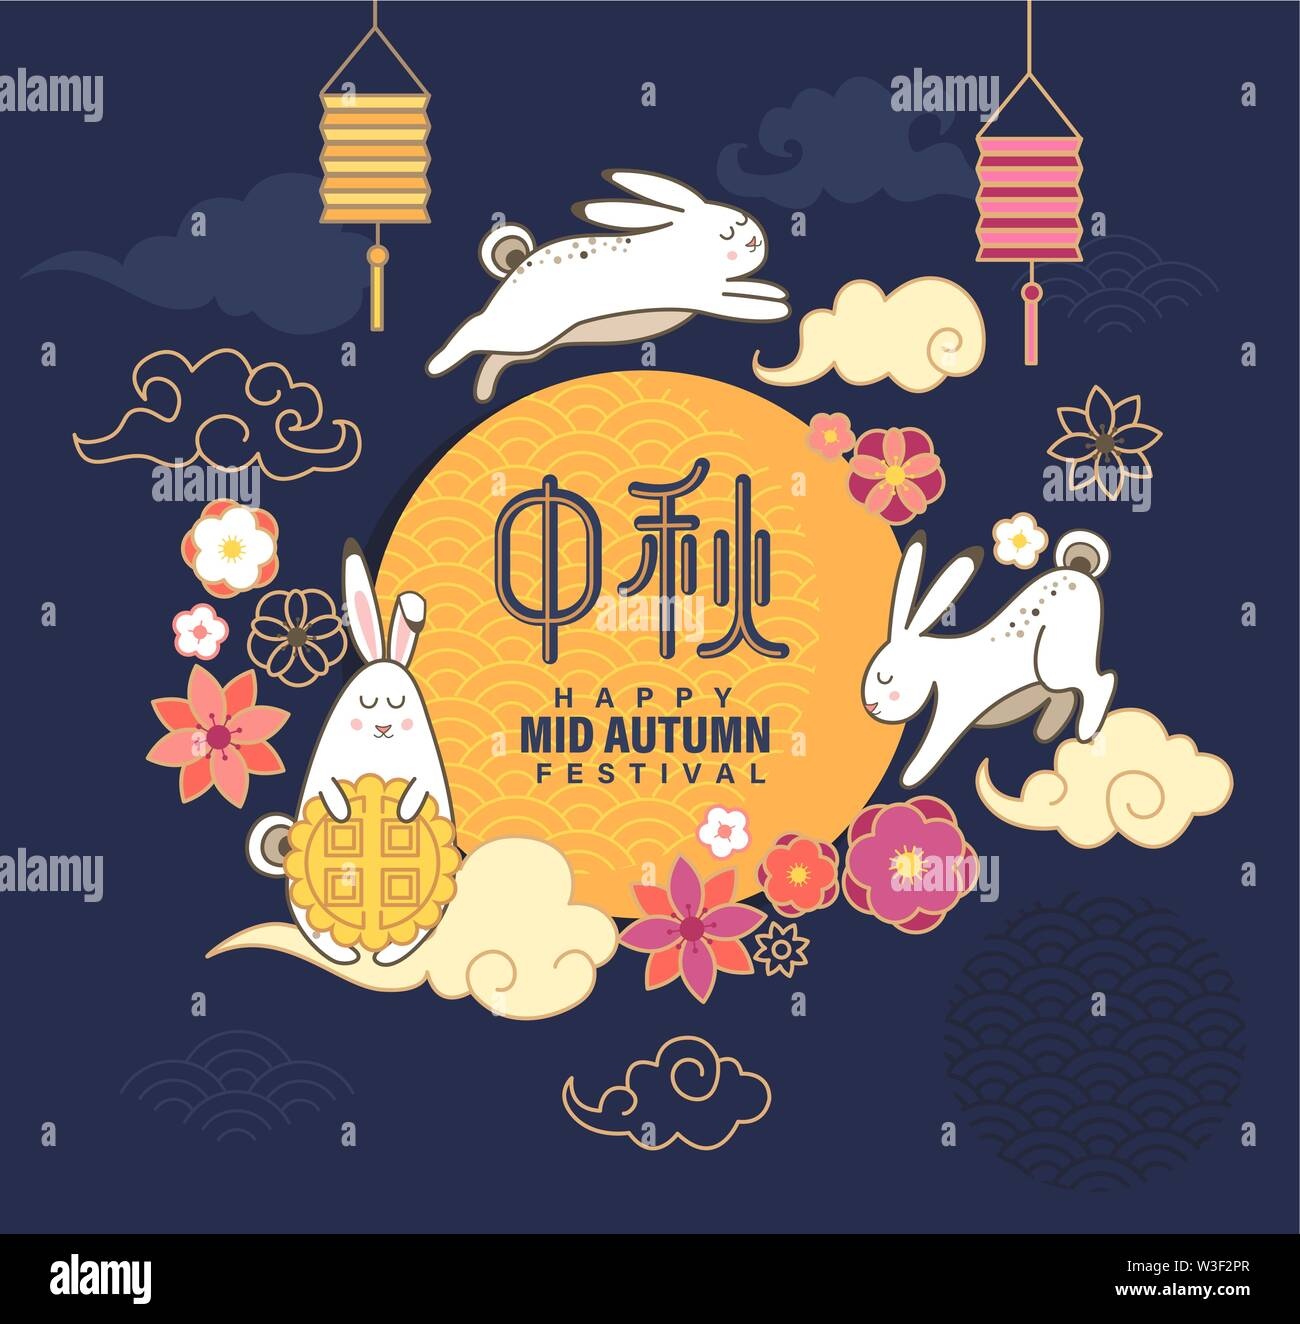 Mid Autumn Festival banner with holiday elements. - Stock Image